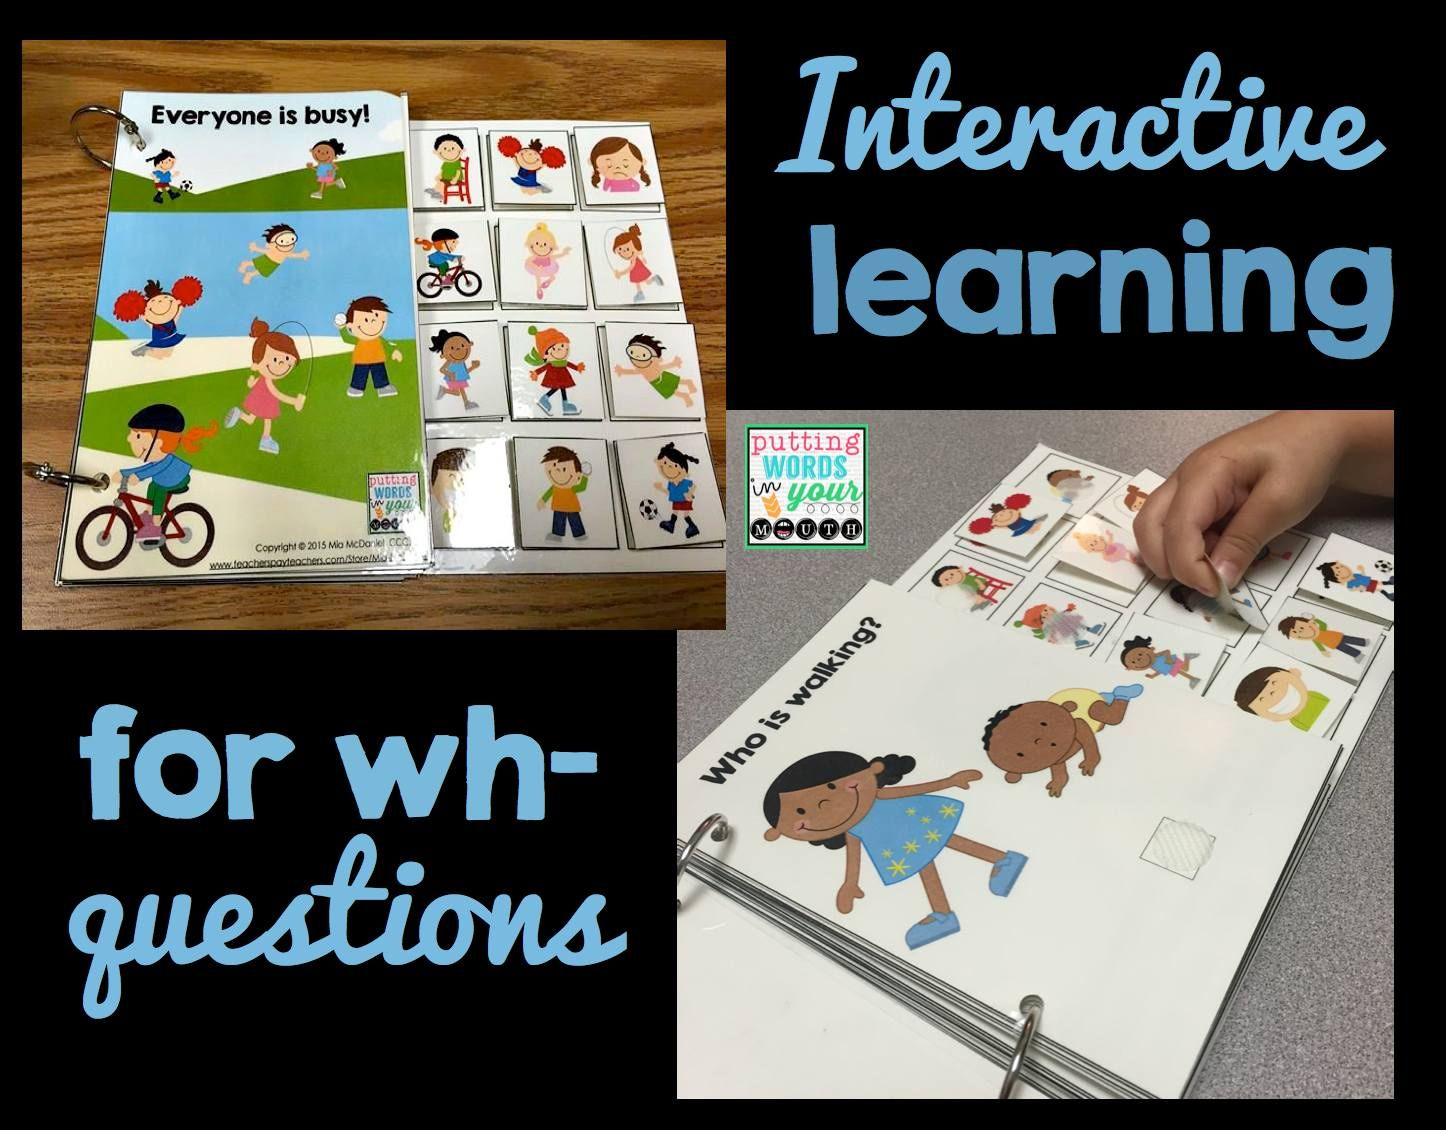 """Make those abstract """"wh"""" words concrete with these fun, hands-on interactive books and teaching tools for answering wh- questions!"""